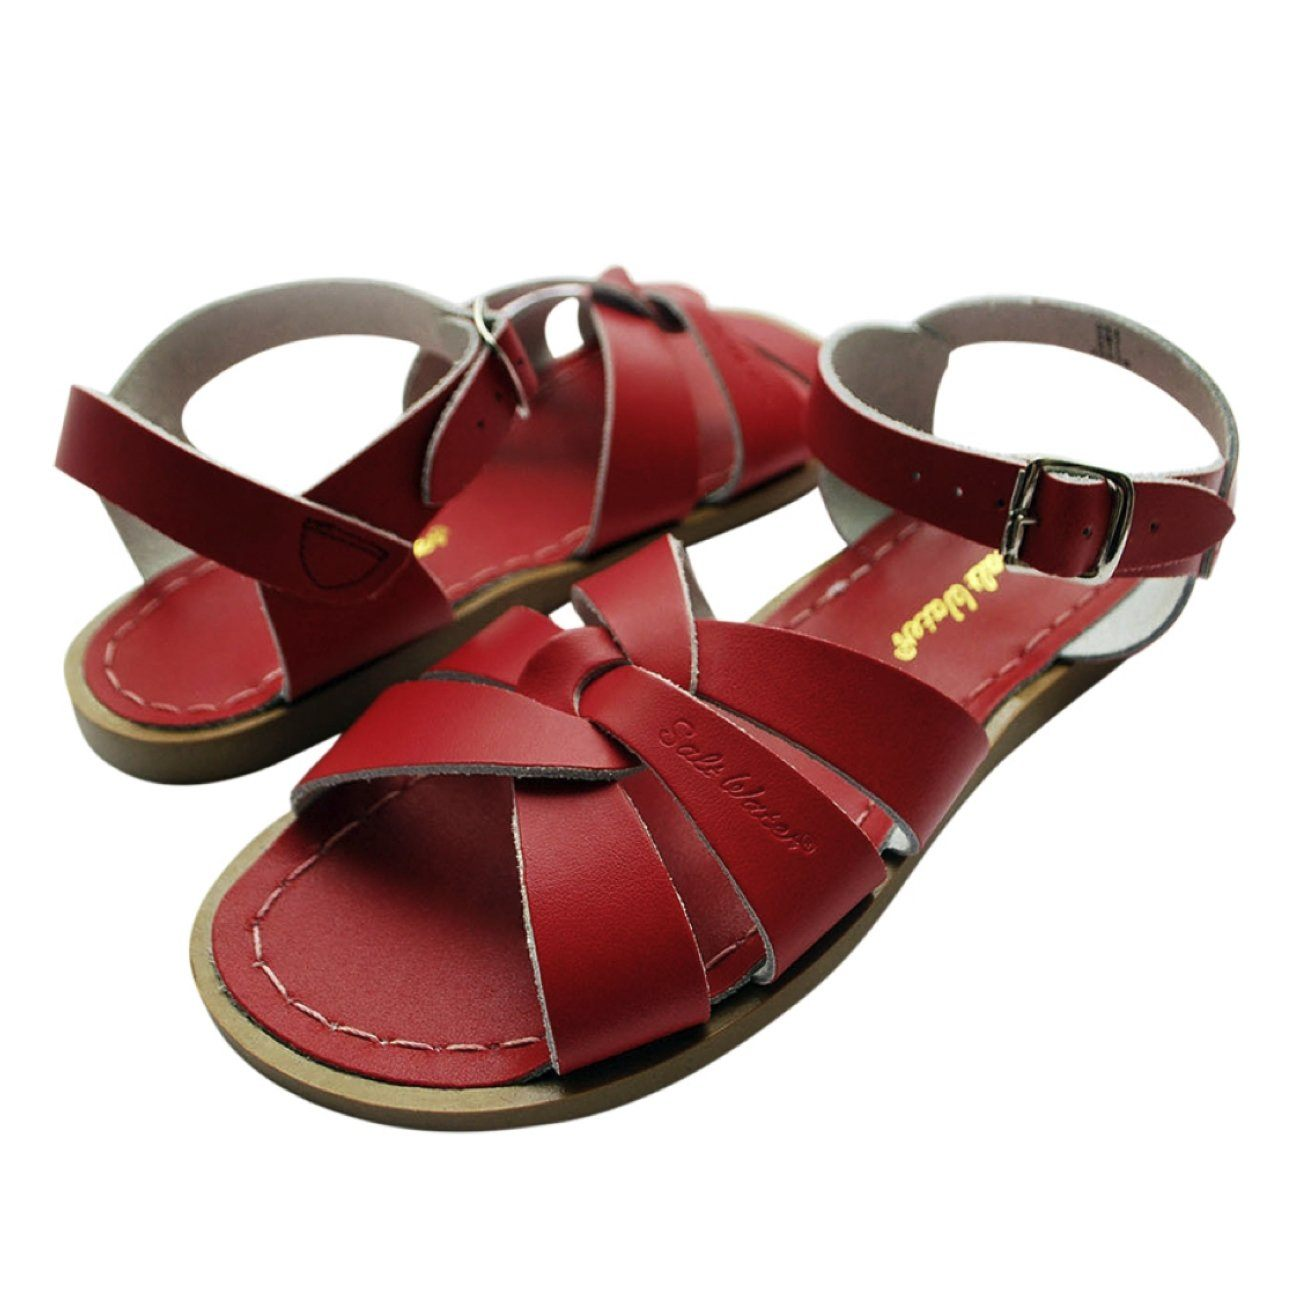 Salt Water Sandals, Original, Adults, Red Sandals Salt Water Sandals Red Adult 4 / Aus Womens 6